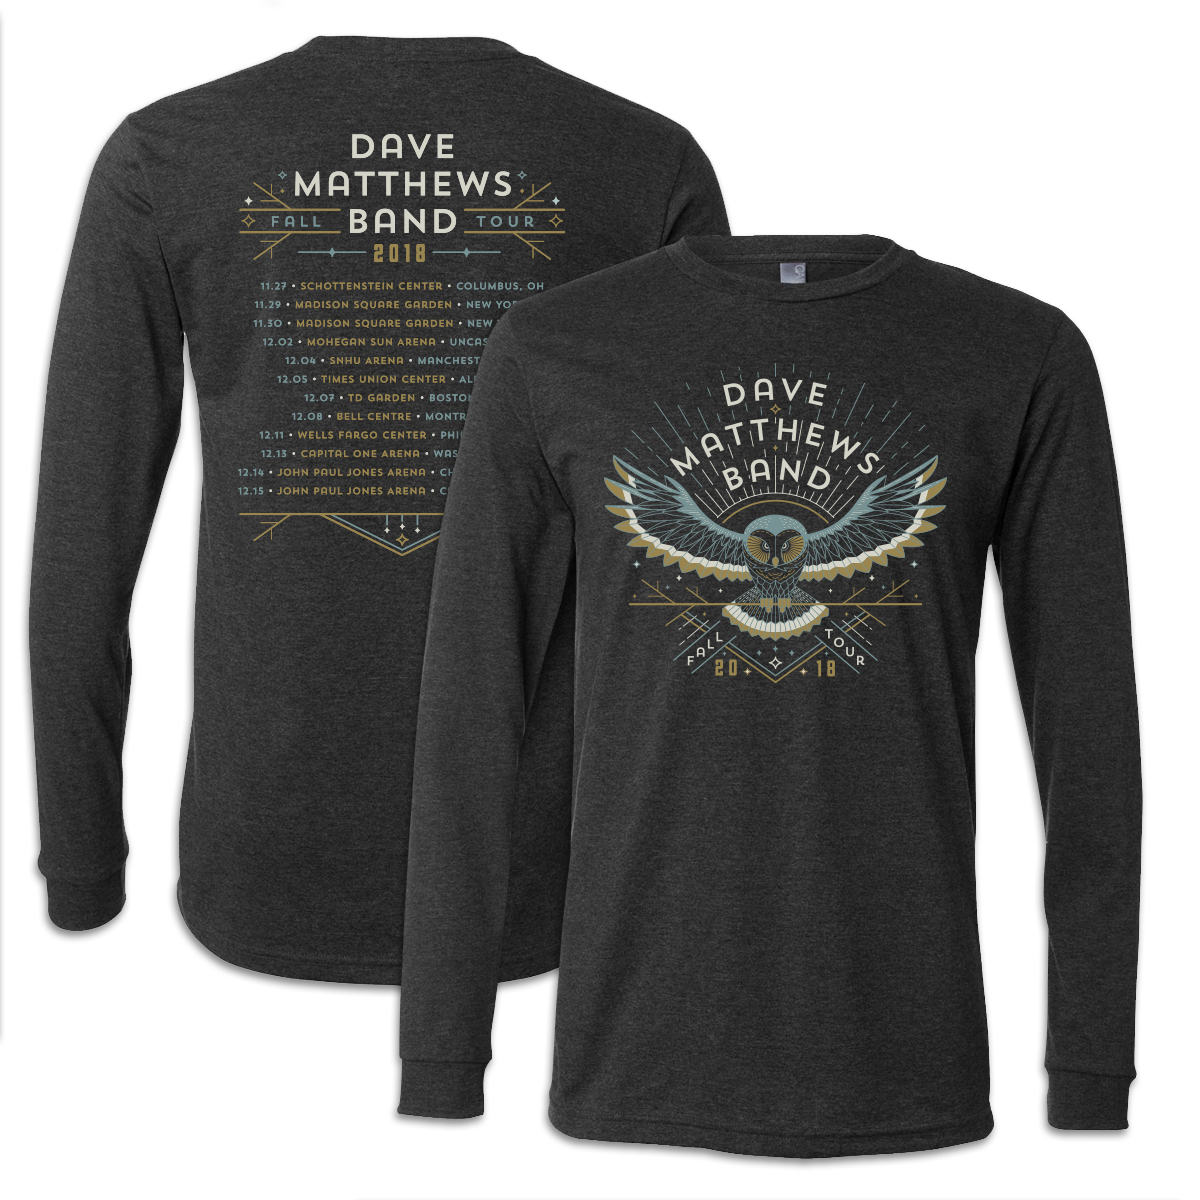 2018 Fall Tour Long Sleeve T-Shirt